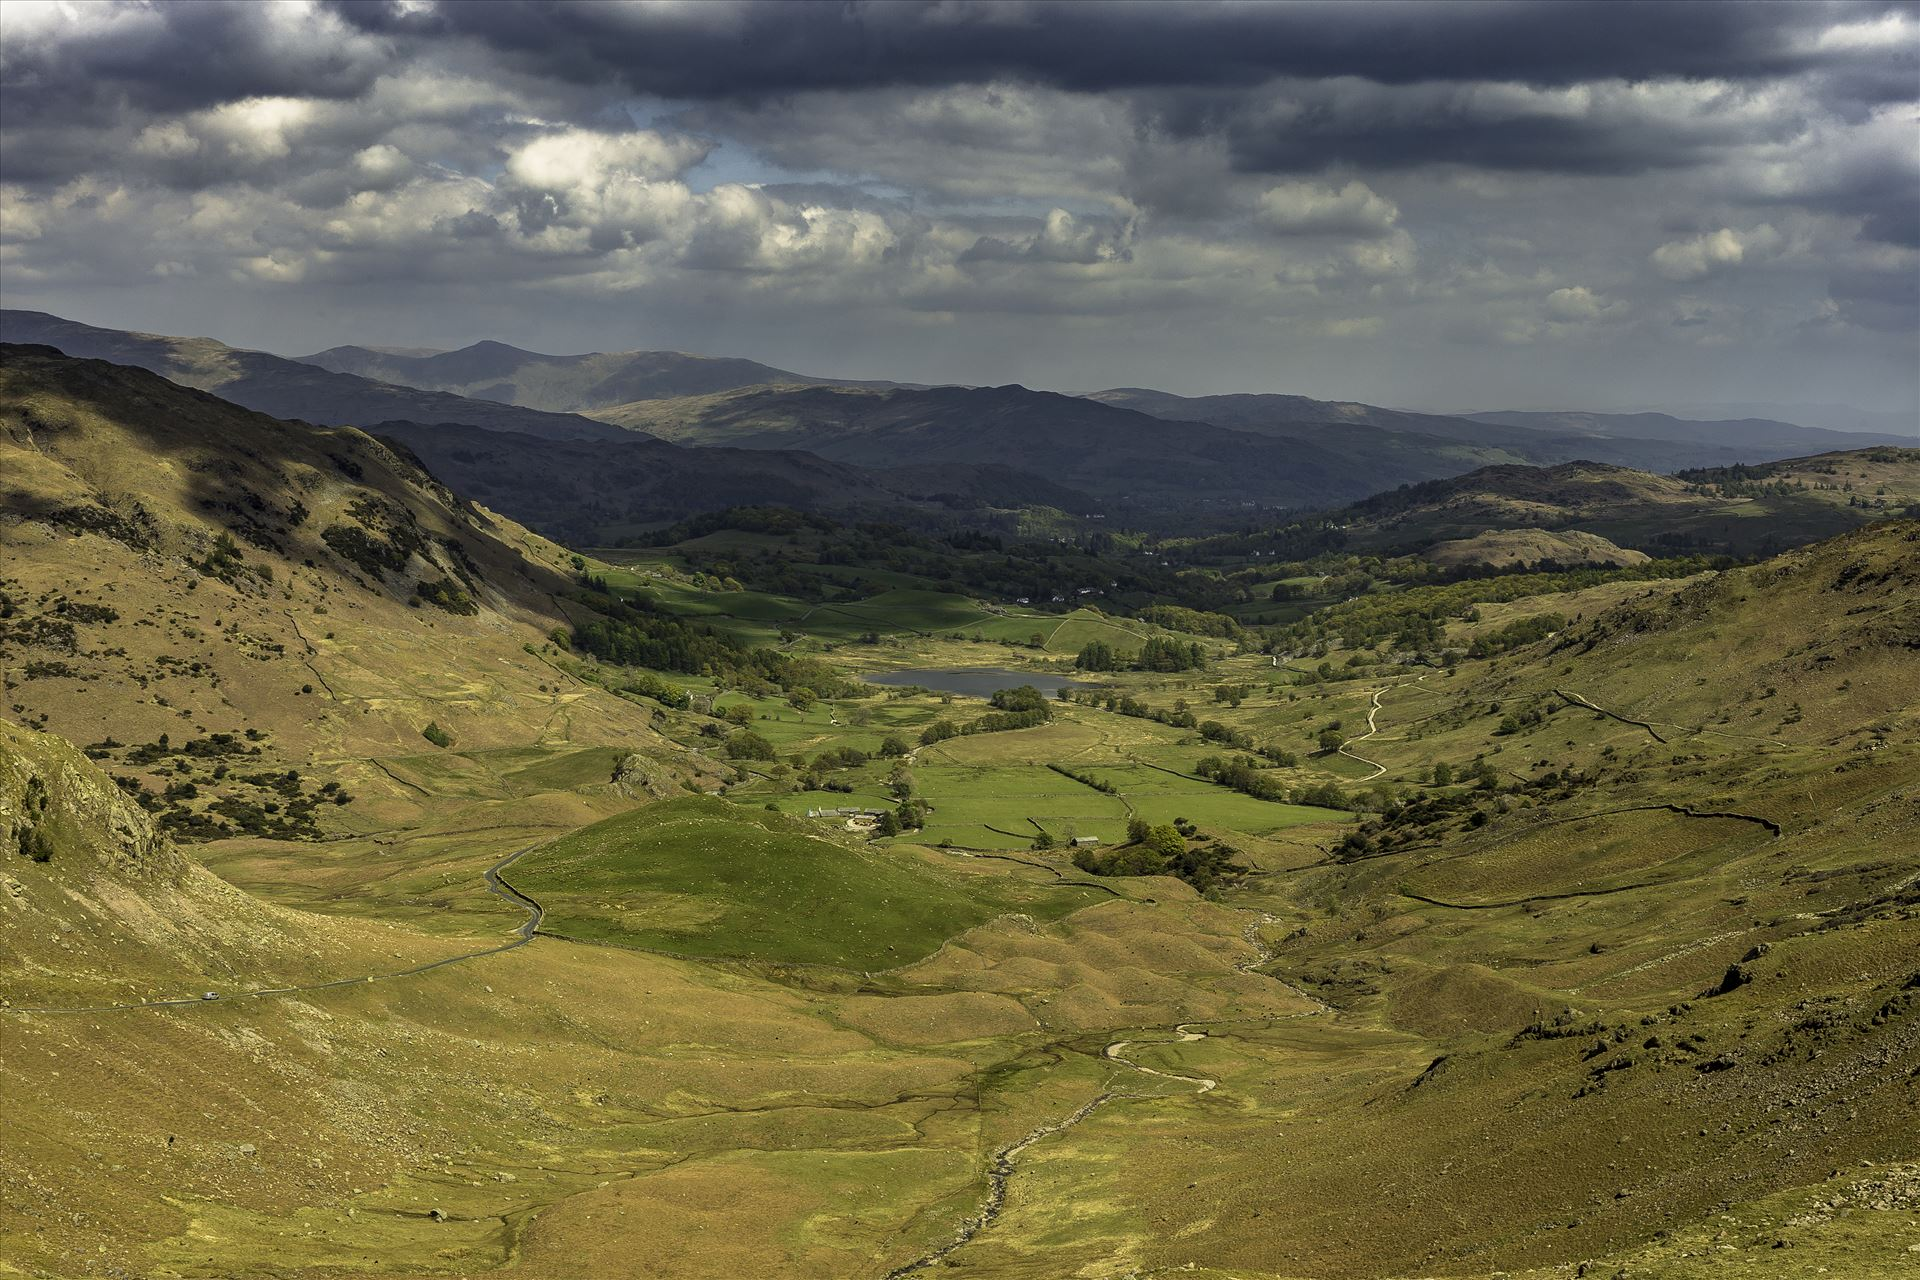 Wrynose Pass - Wrynose pass in lake district by David Morton Photography